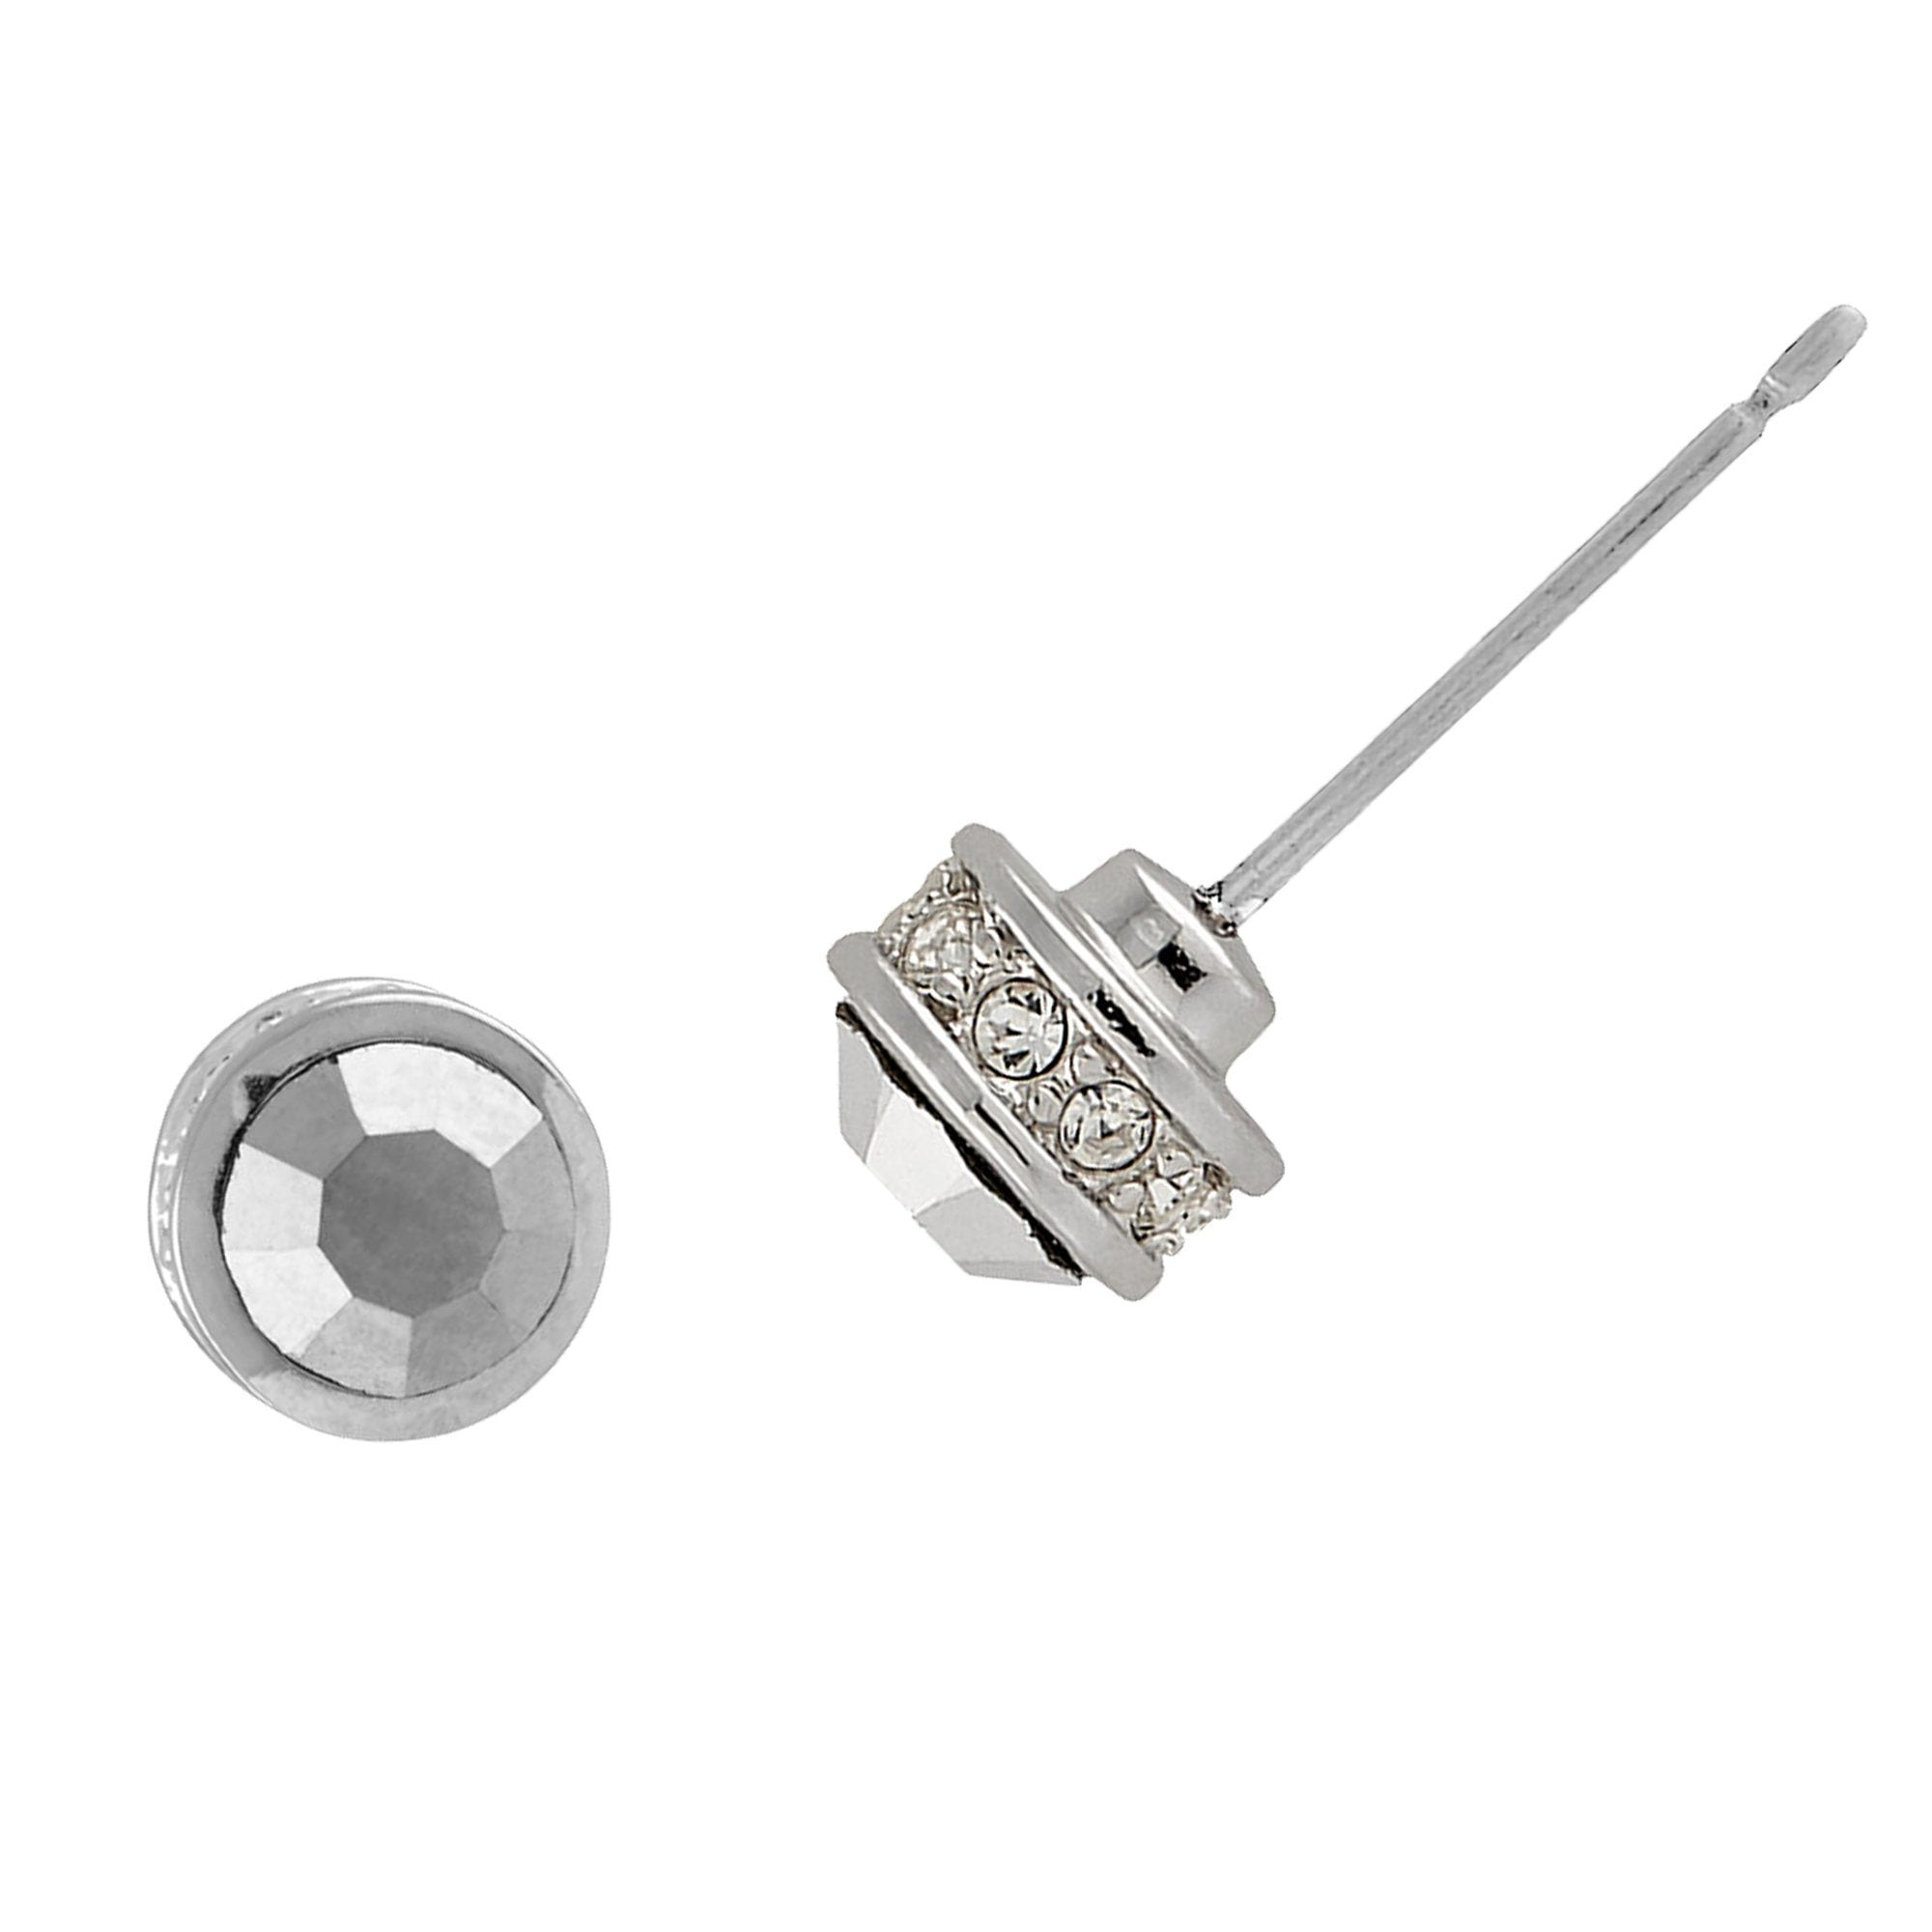 Buckley London Ohrstecker Messing rhodiniert mit Kristallen | Schmuck > Ohrschmuck & Ohrringe > Ohrstecker | buckley london